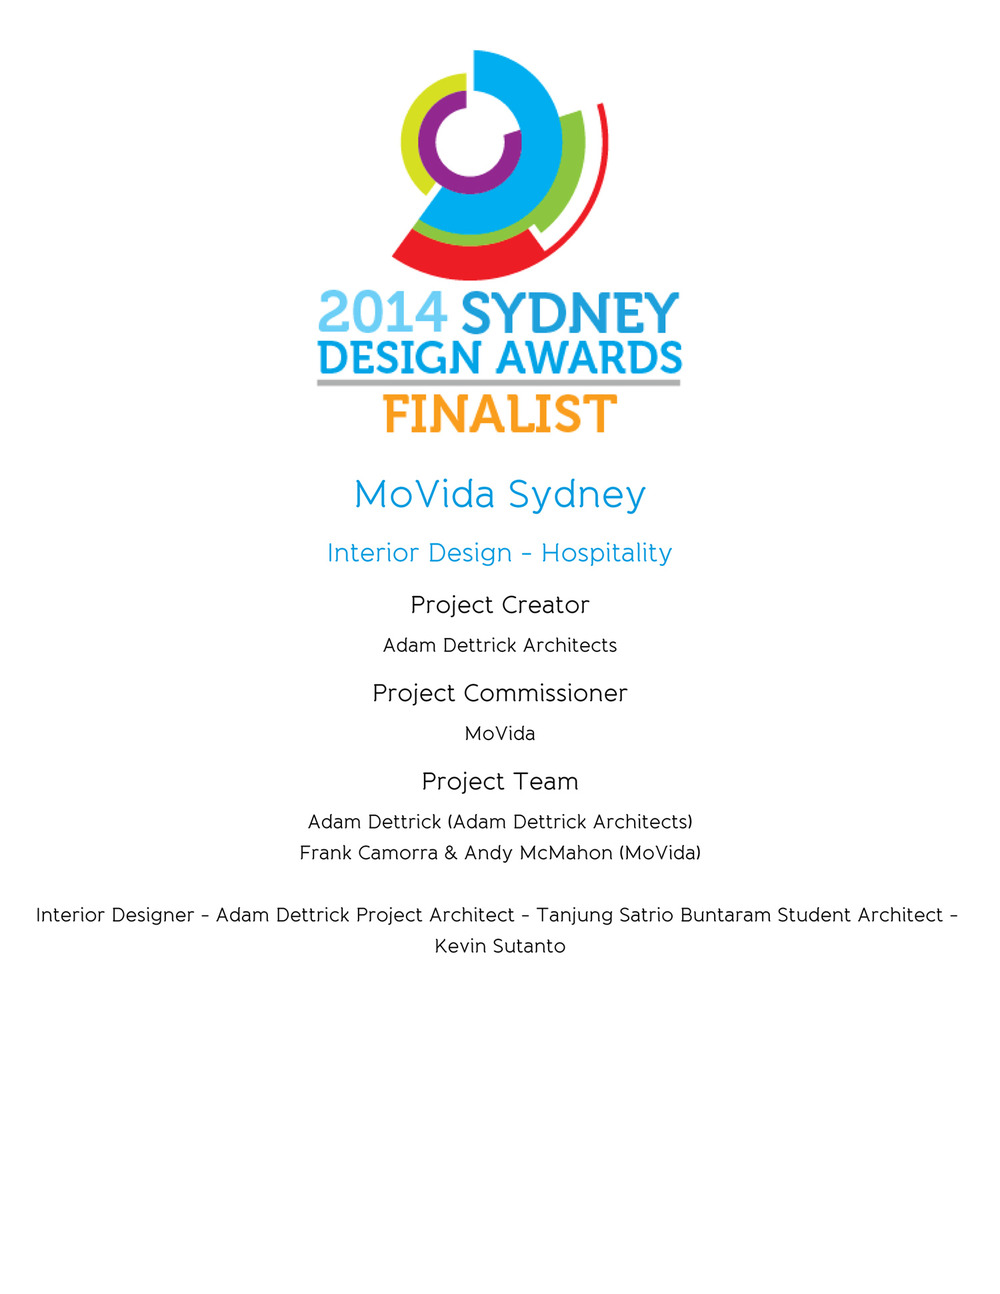 Movida Sydney is a finalist in the 2014 Sydney Design Awards.